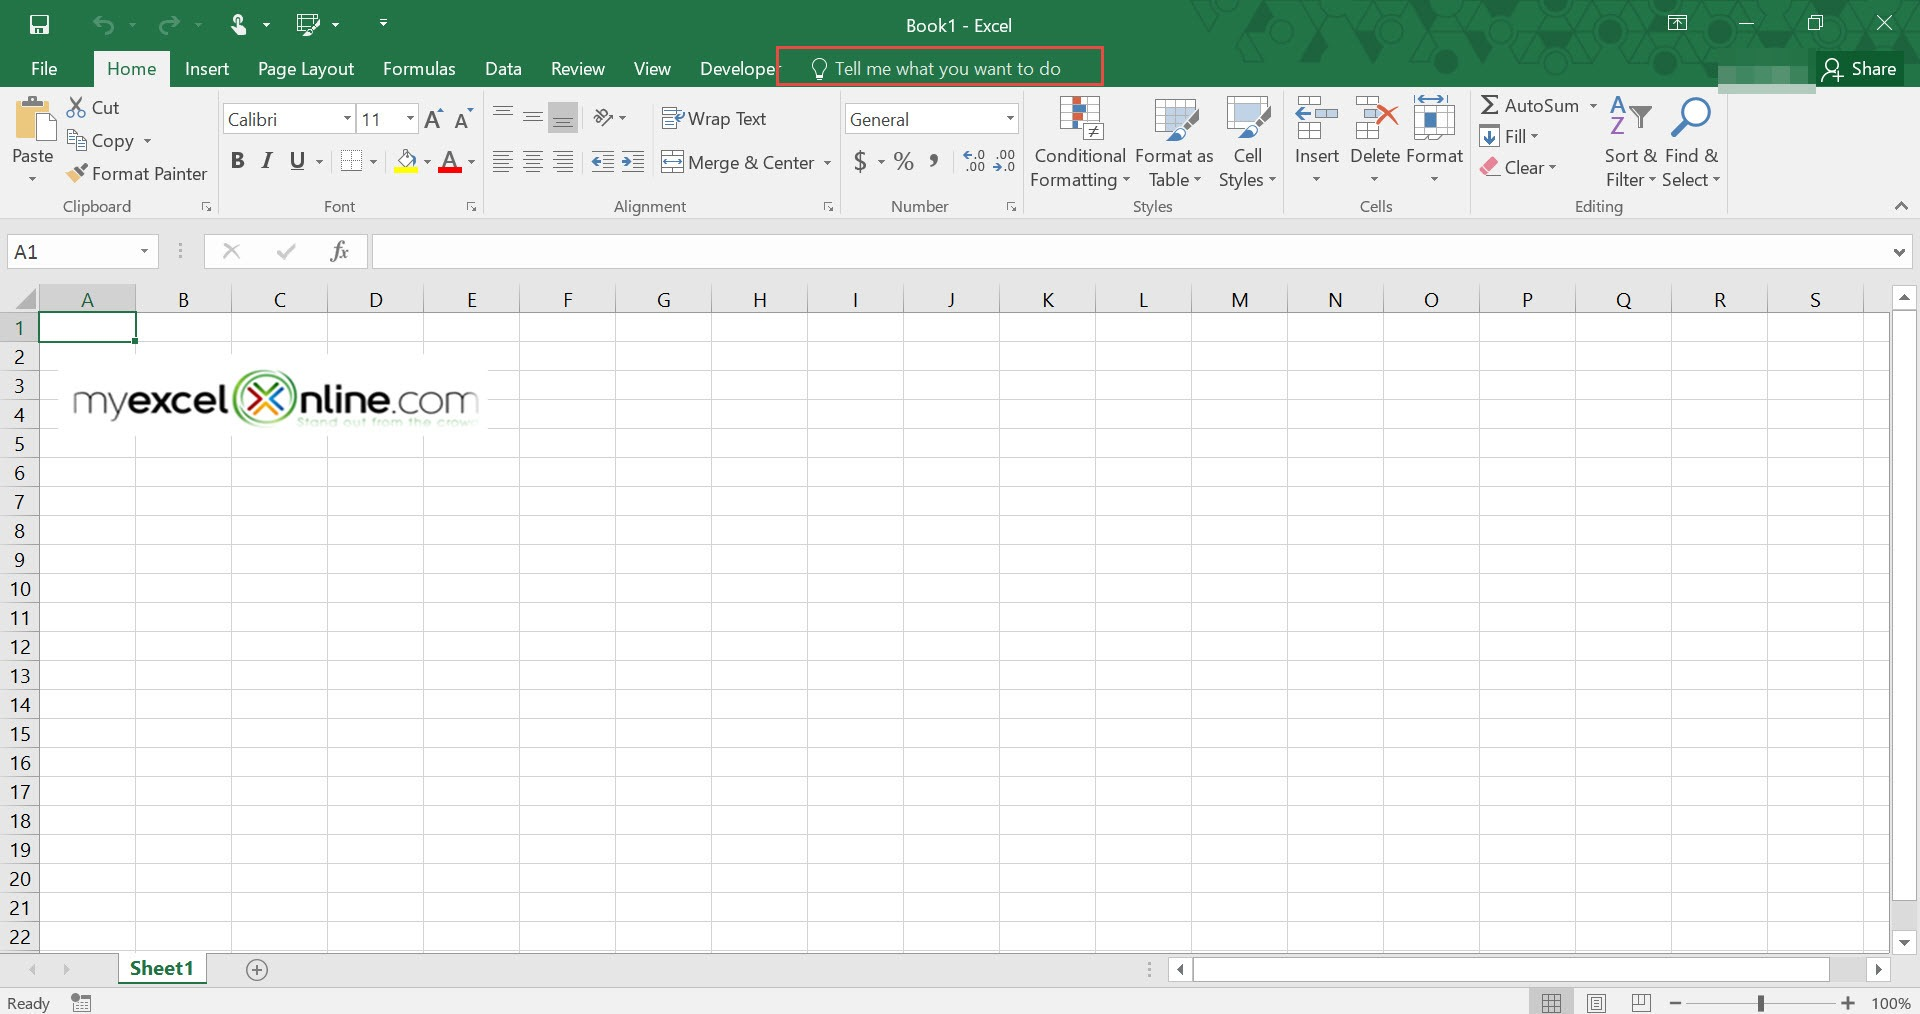 What Microsoft Excel Version Do I Have